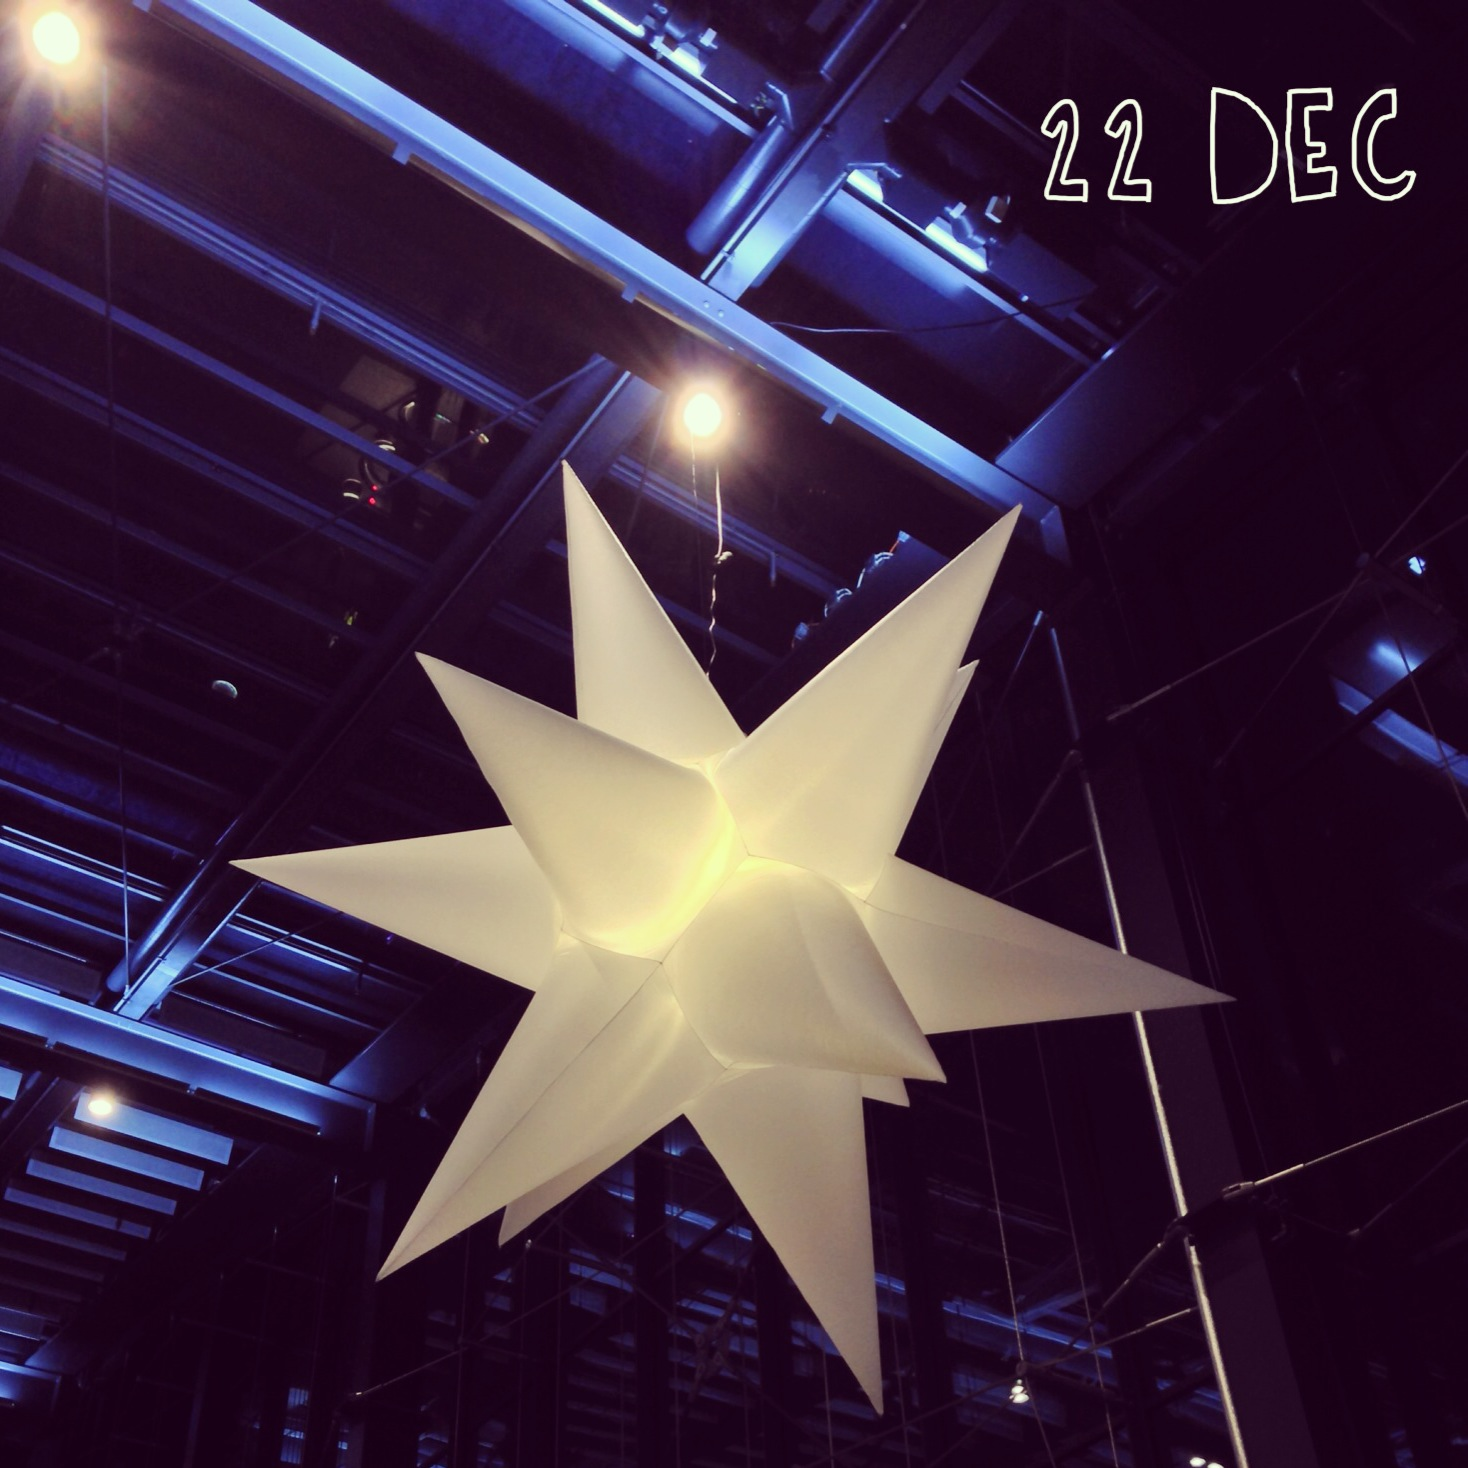 22 December – Christmas decorations at Malmö Central Station